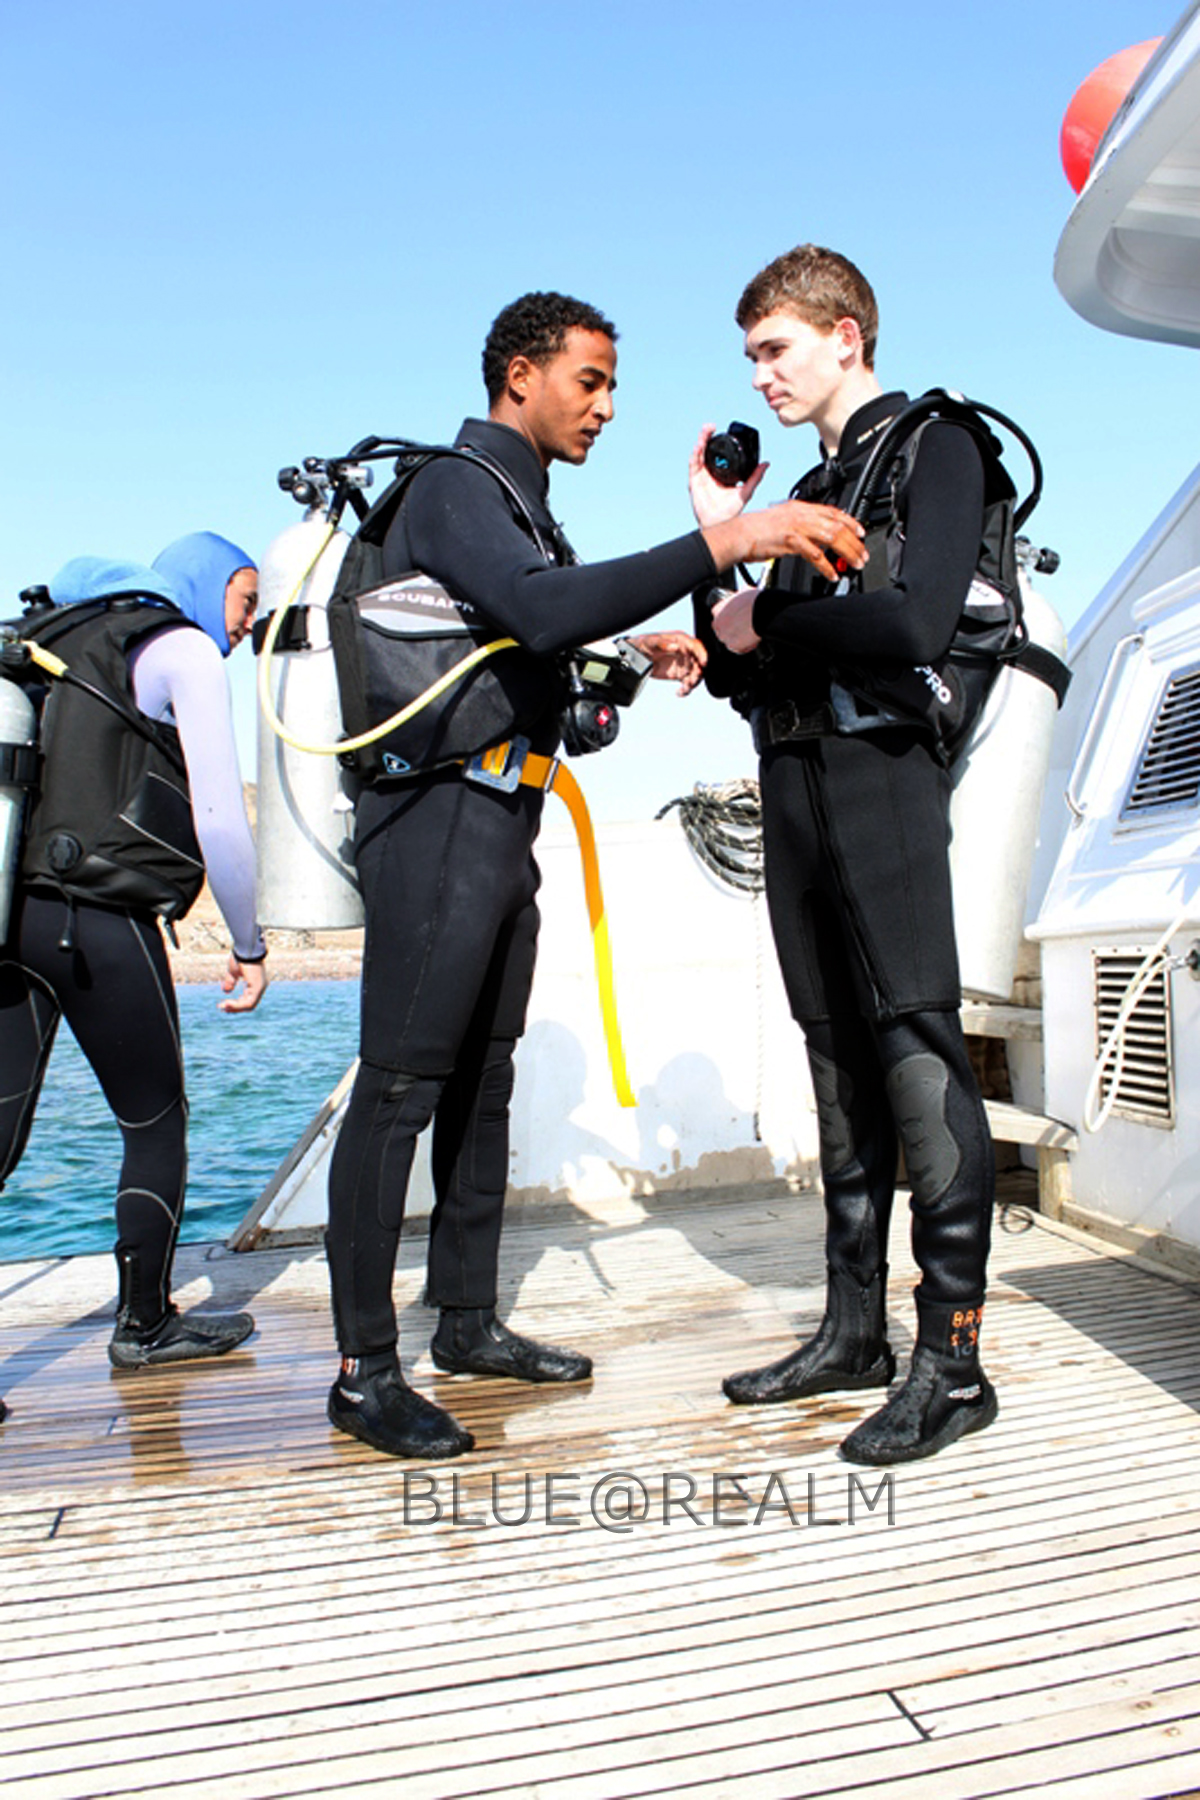 Safety in diving is our priority